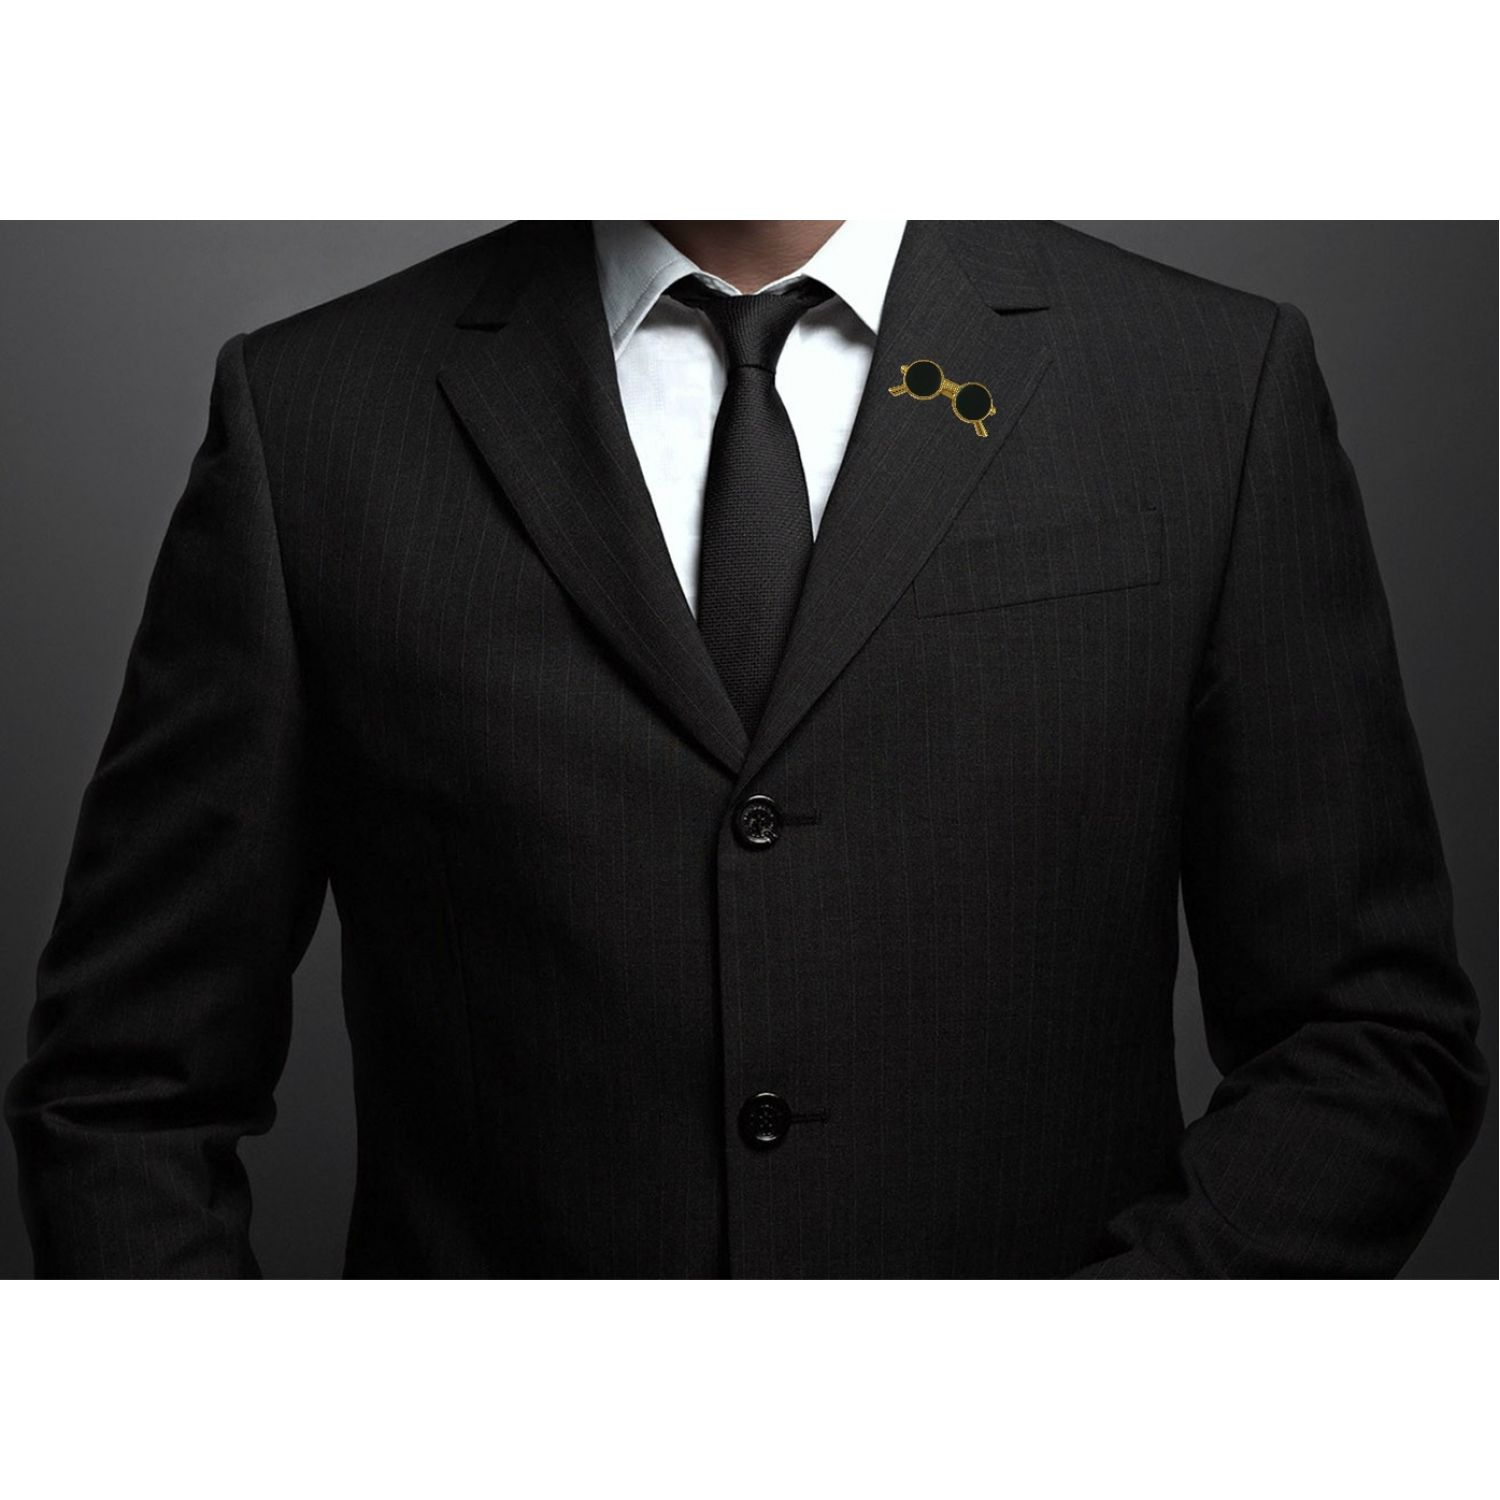 boutonniere men clothing lapel mens tuxedo accessories brooch s corsage pin itm prom rope ebay suit